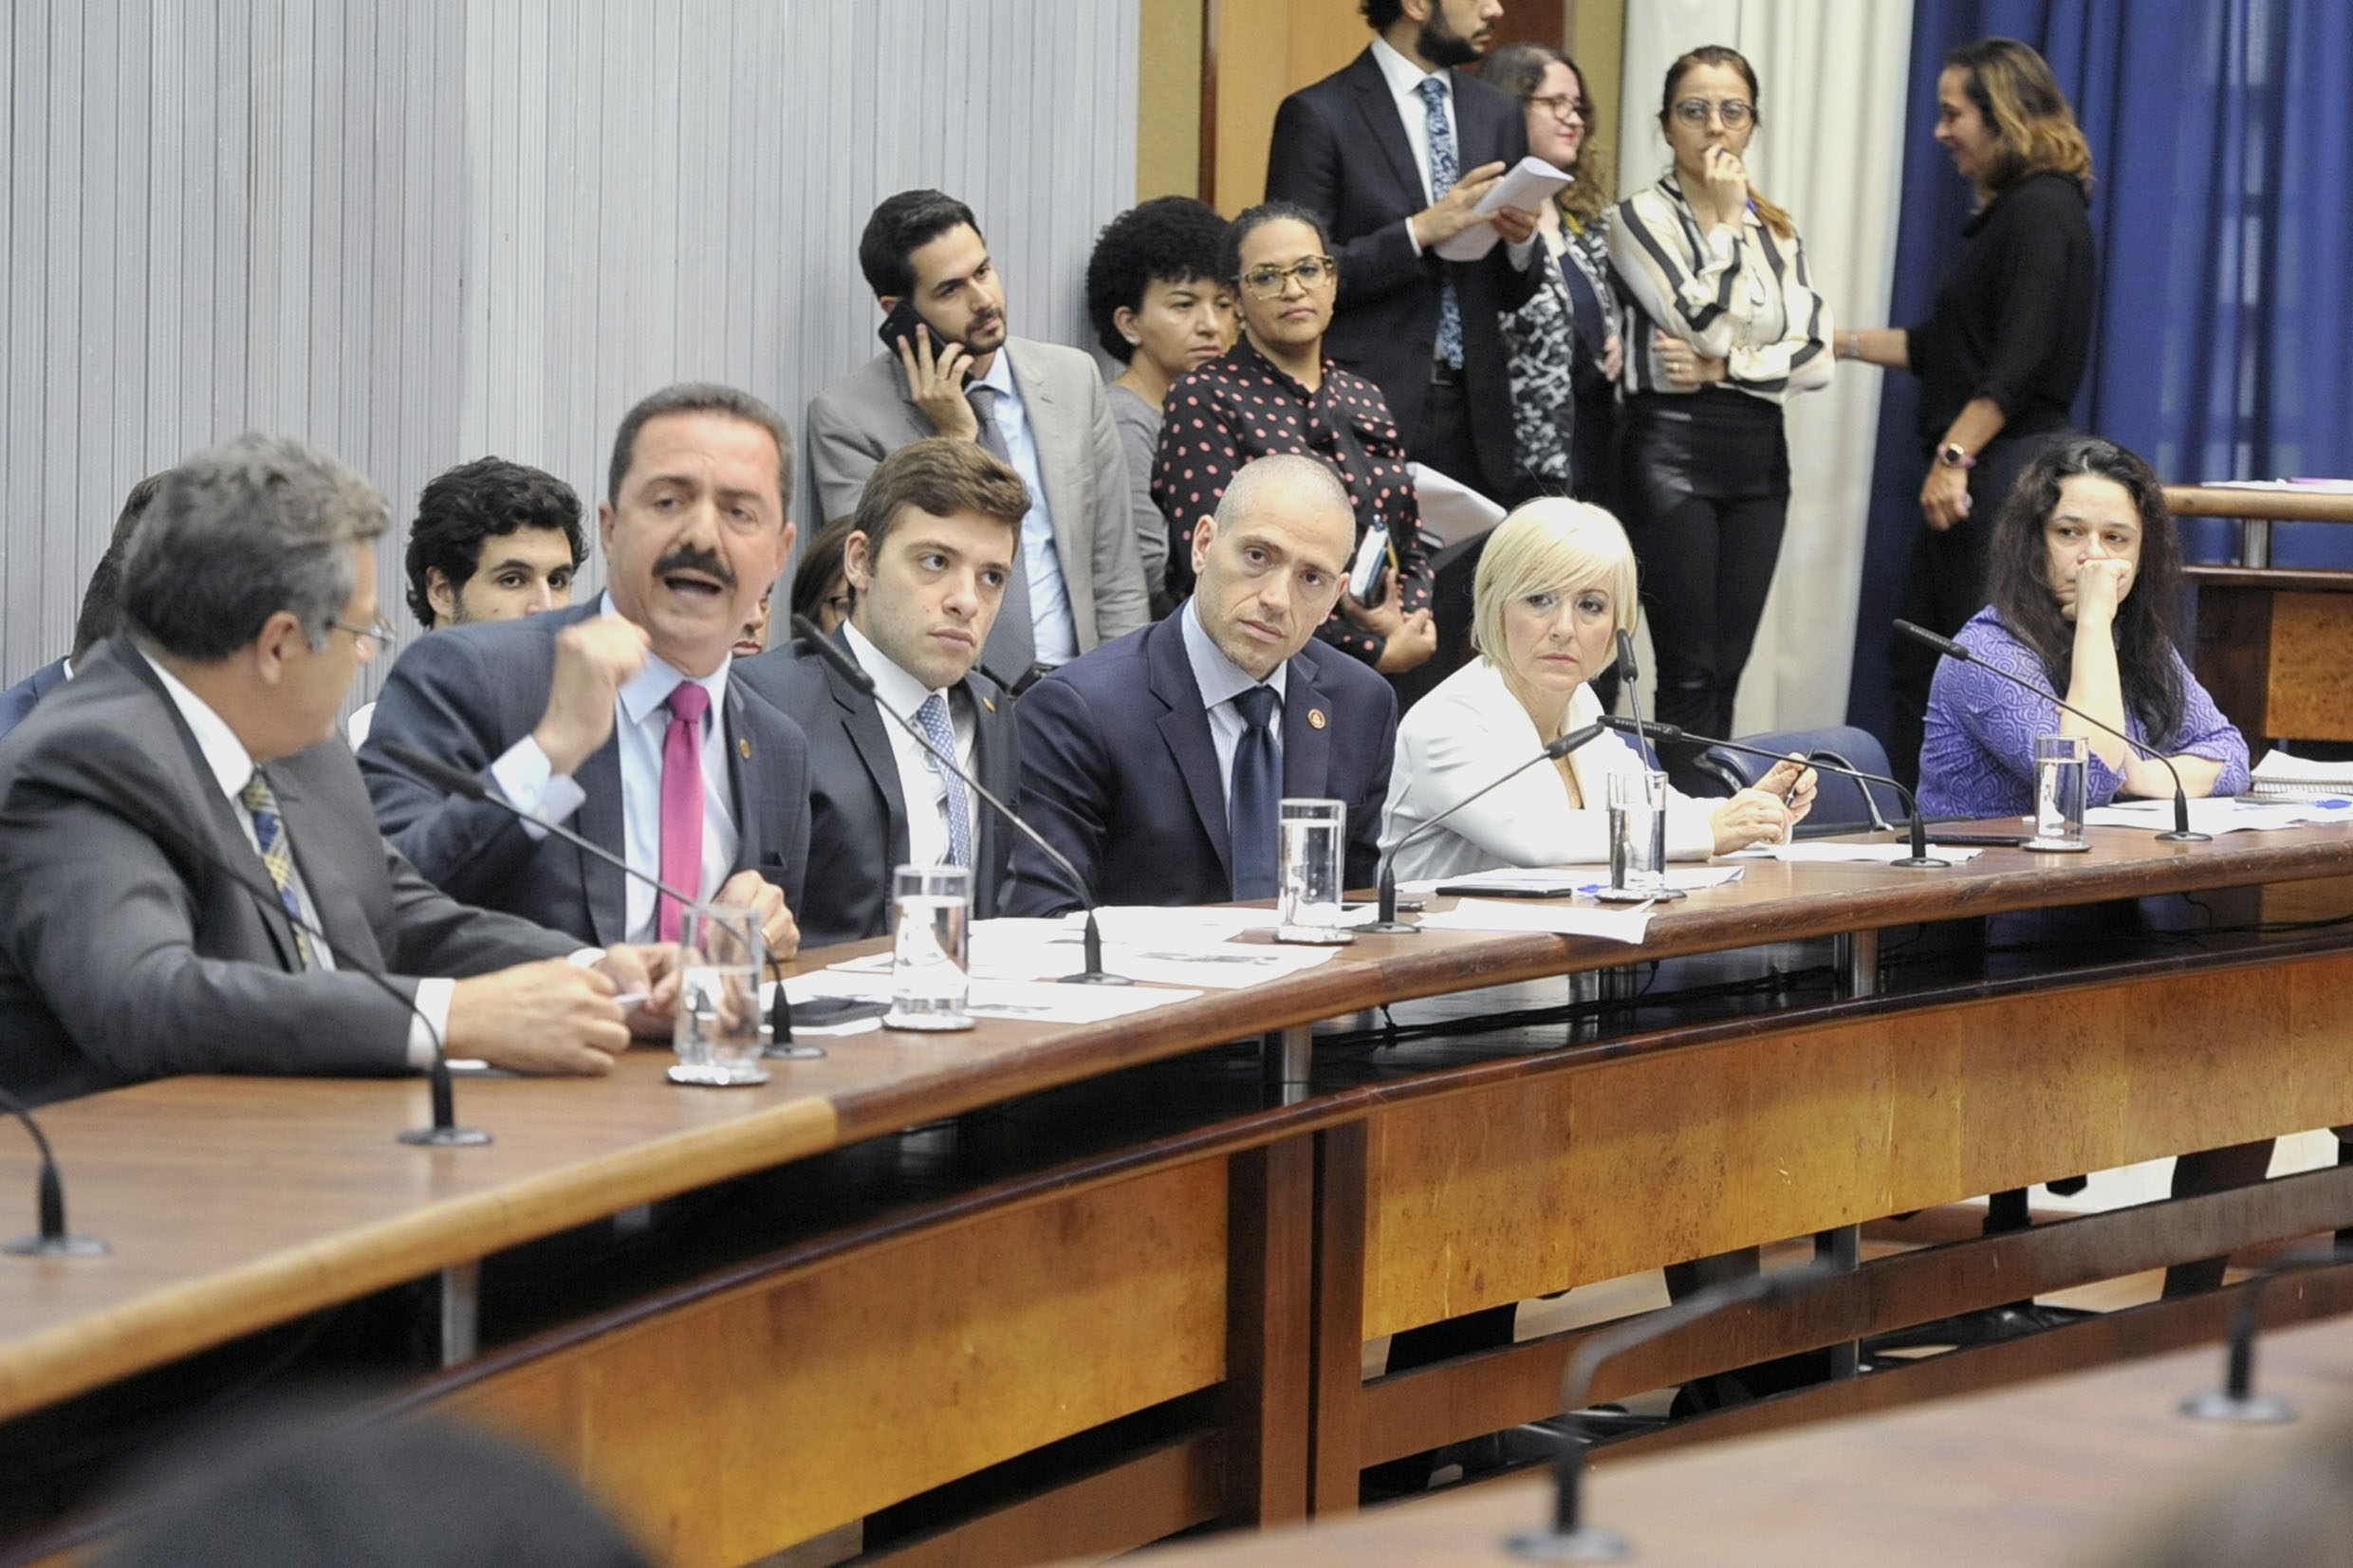 Parlamentares na comissão<a style='float:right' href='https://www3.al.sp.gov.br/repositorio/noticia/N-05-2019/fg234186.jpg' target=_blank><img src='/_img/material-file-download-white.png' width='14px' alt='Clique para baixar a imagem'></a>